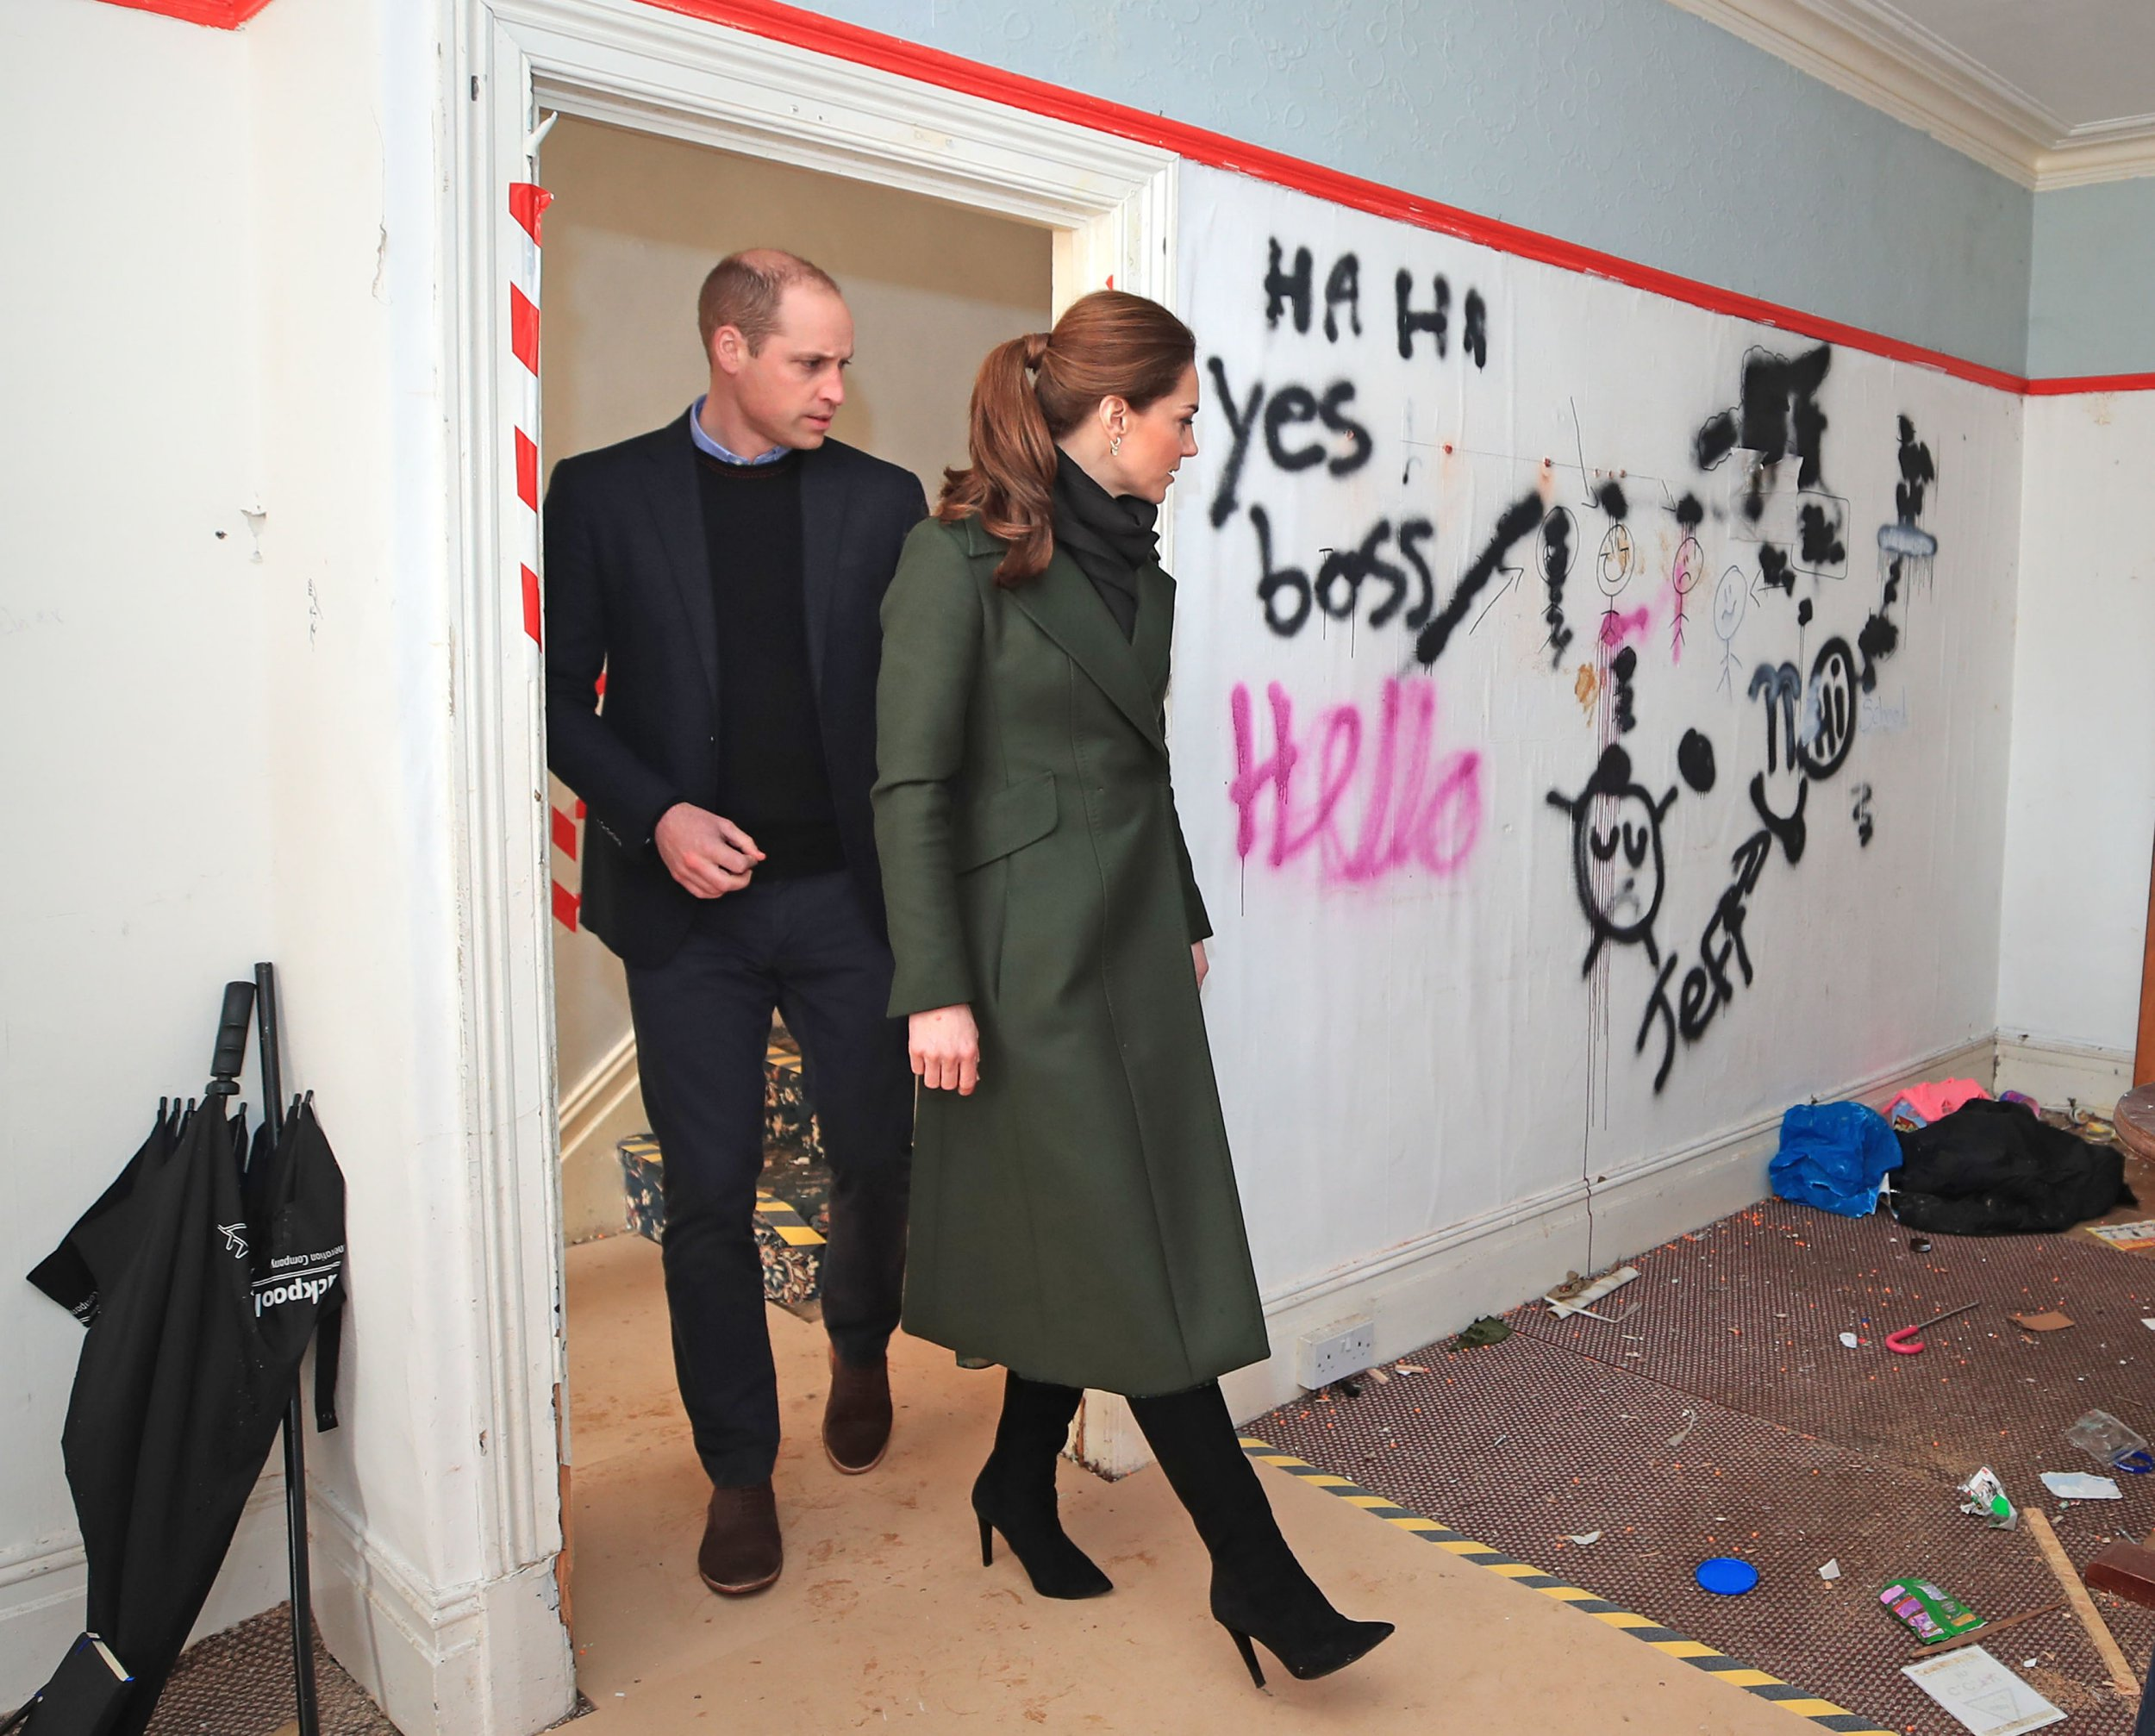 The Duke and Duchess of Cambridge during a visit to Kirby Road in Blackpool, which demonstrates the realities of the housing problem faced in the town. PRESS ASSOCIATION Photo. Picture date: Wednesday March 6, 2019. See PA story ROYAL Cambridge. Photo credit should read: Peter Byrne/PA Wire